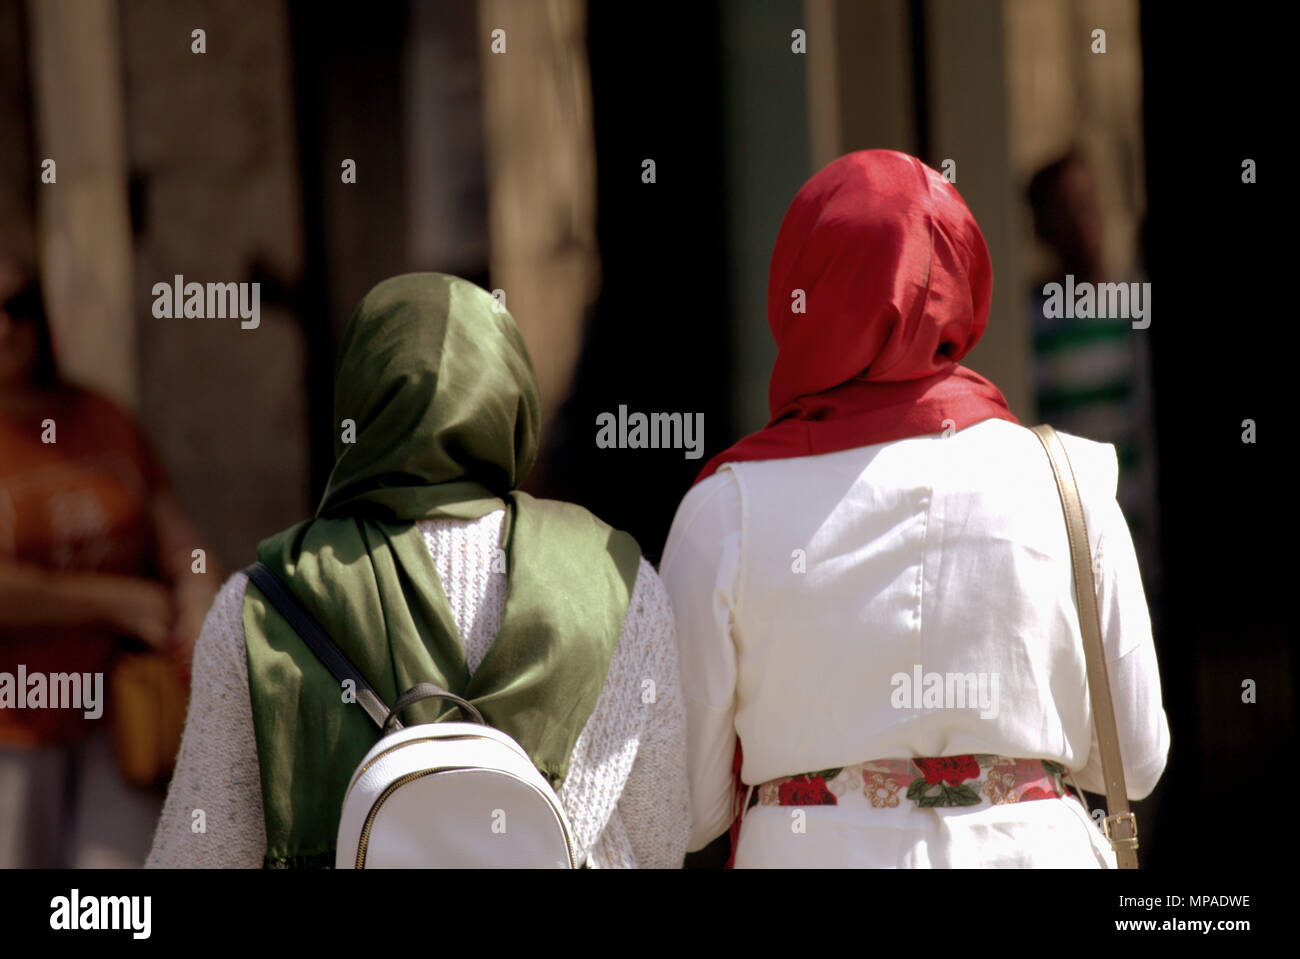 two  headscarfs headscarf headscarves hijab hijabs colors colours red and green on a sunny day Muslim Muslims on street graphic copyspace - Stock Image